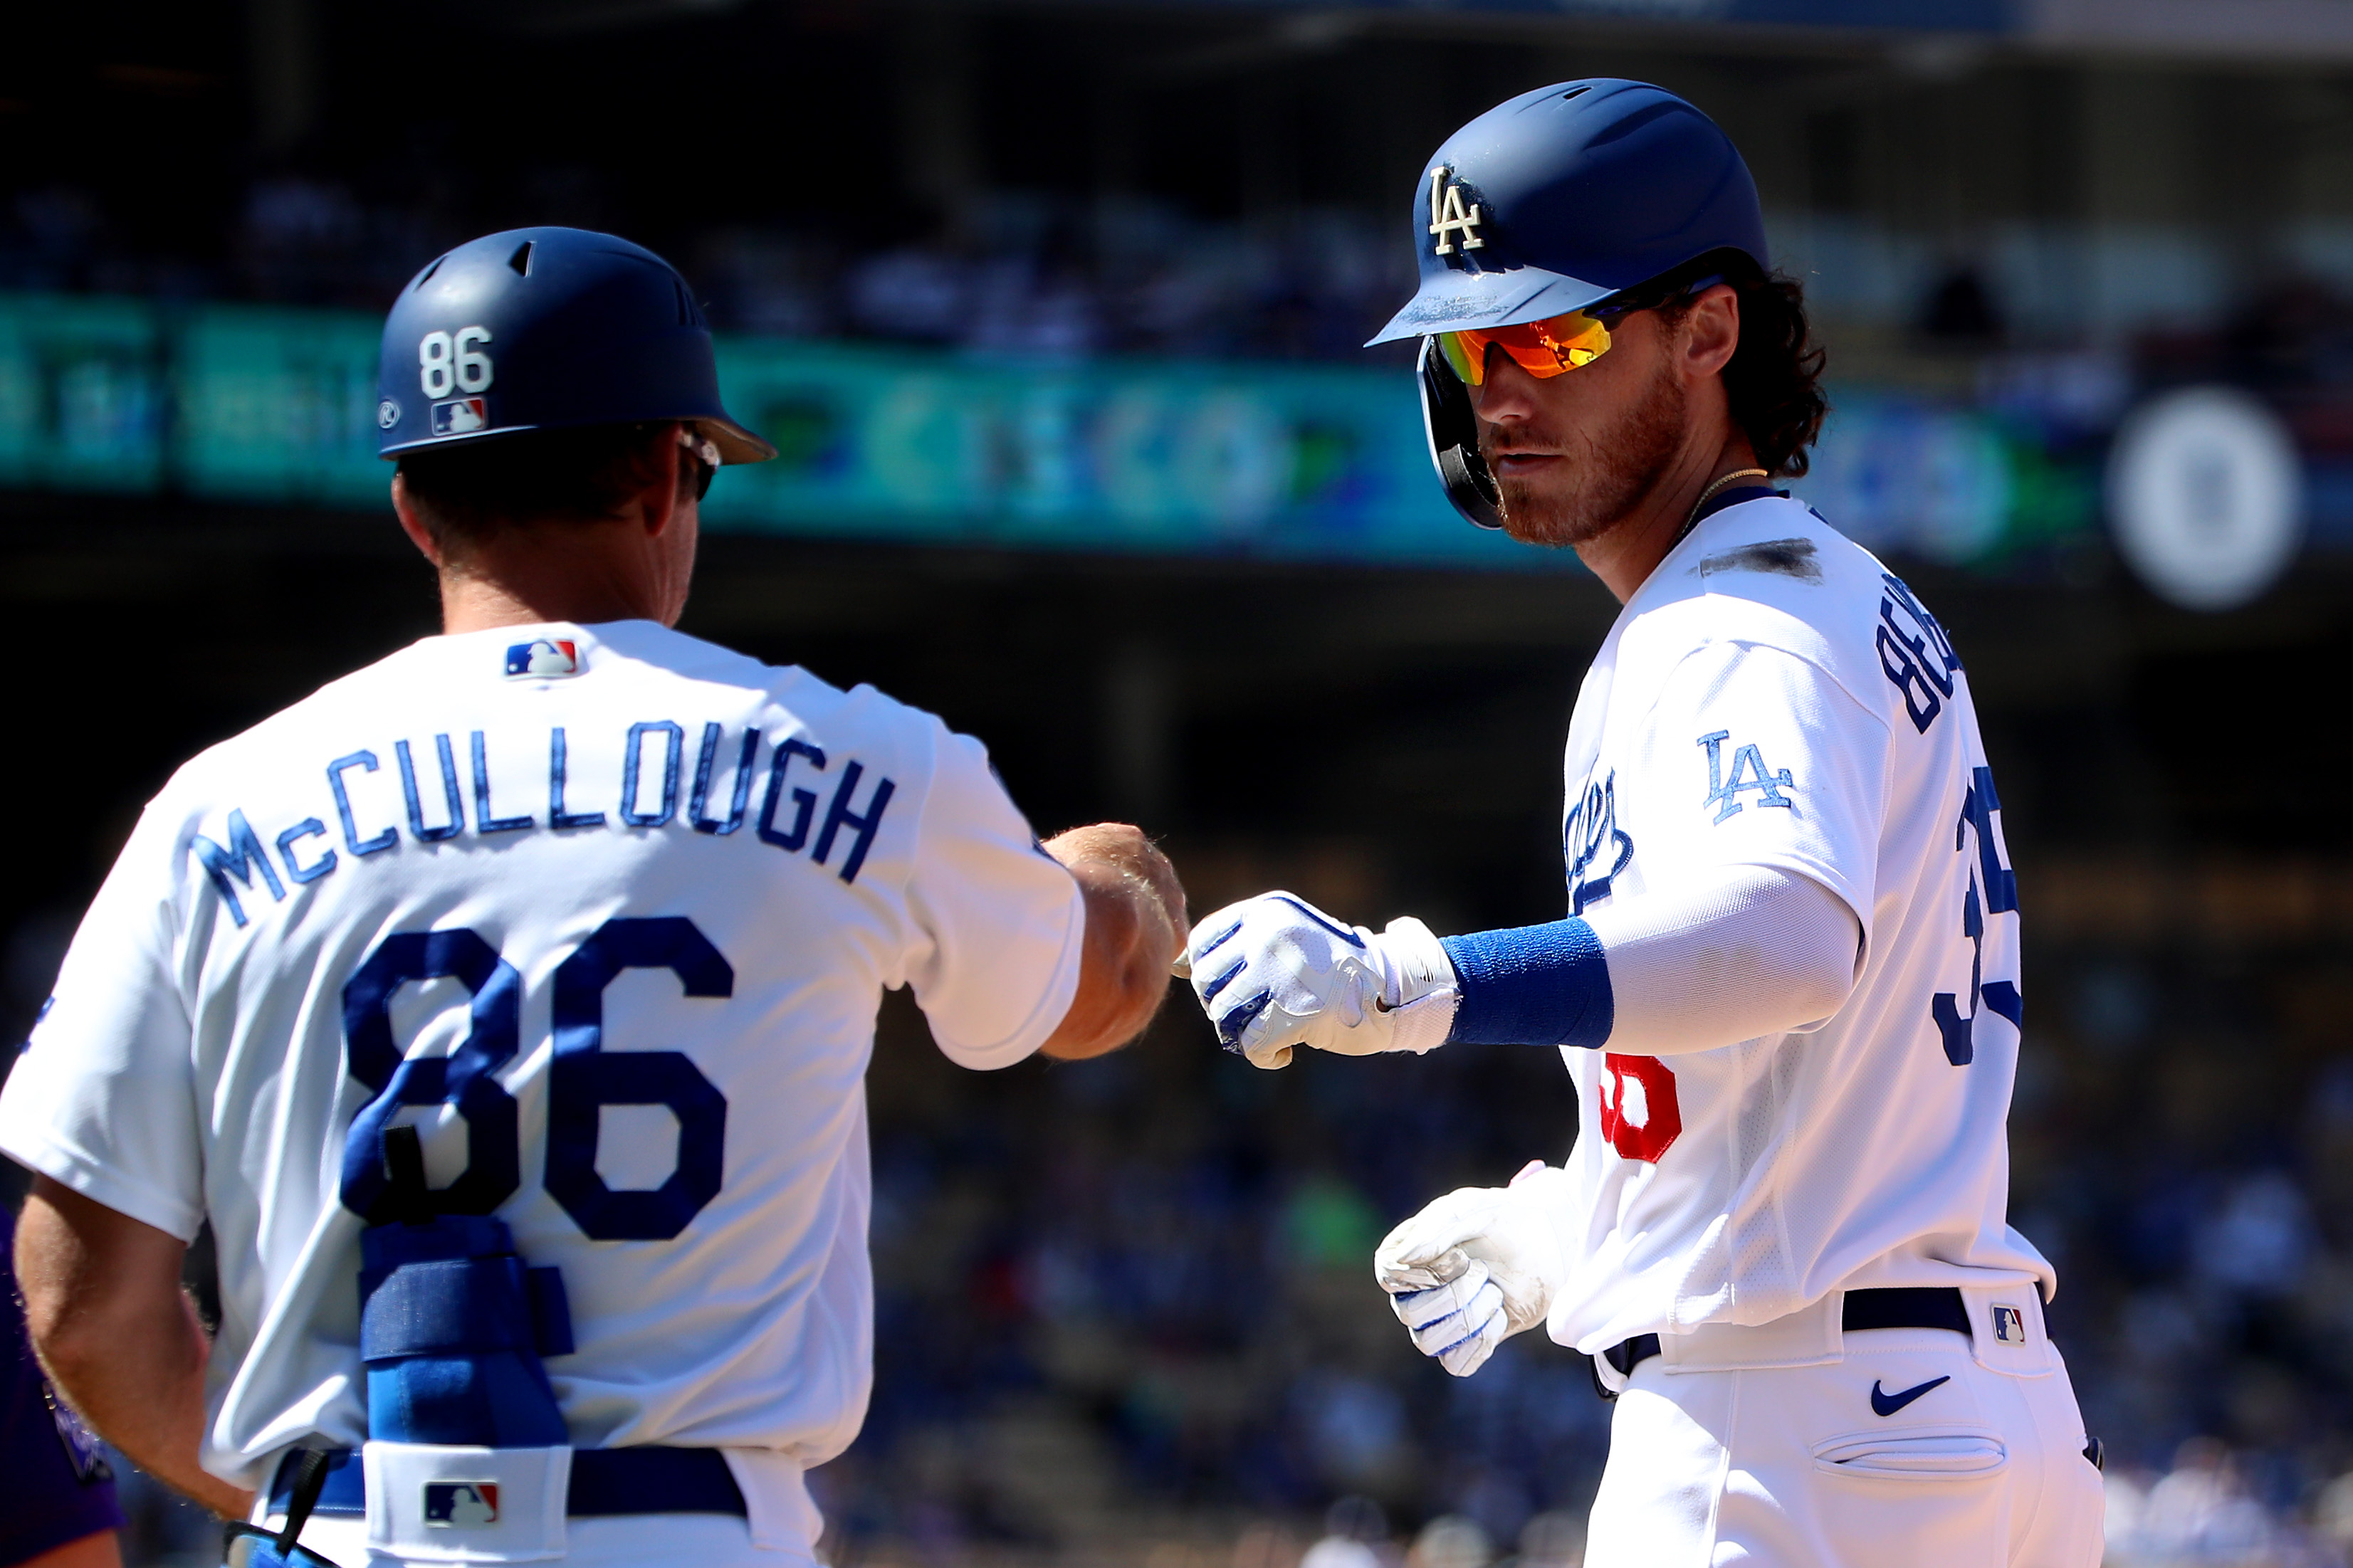 Cody Bellinger of the Los Angeles Dodgers celebrates his single with first base coach Clayton McCullough during the fifth inning against the Colorado Rockies at Dodger Stadium on August 29, 2021 in Los Angeles, California.